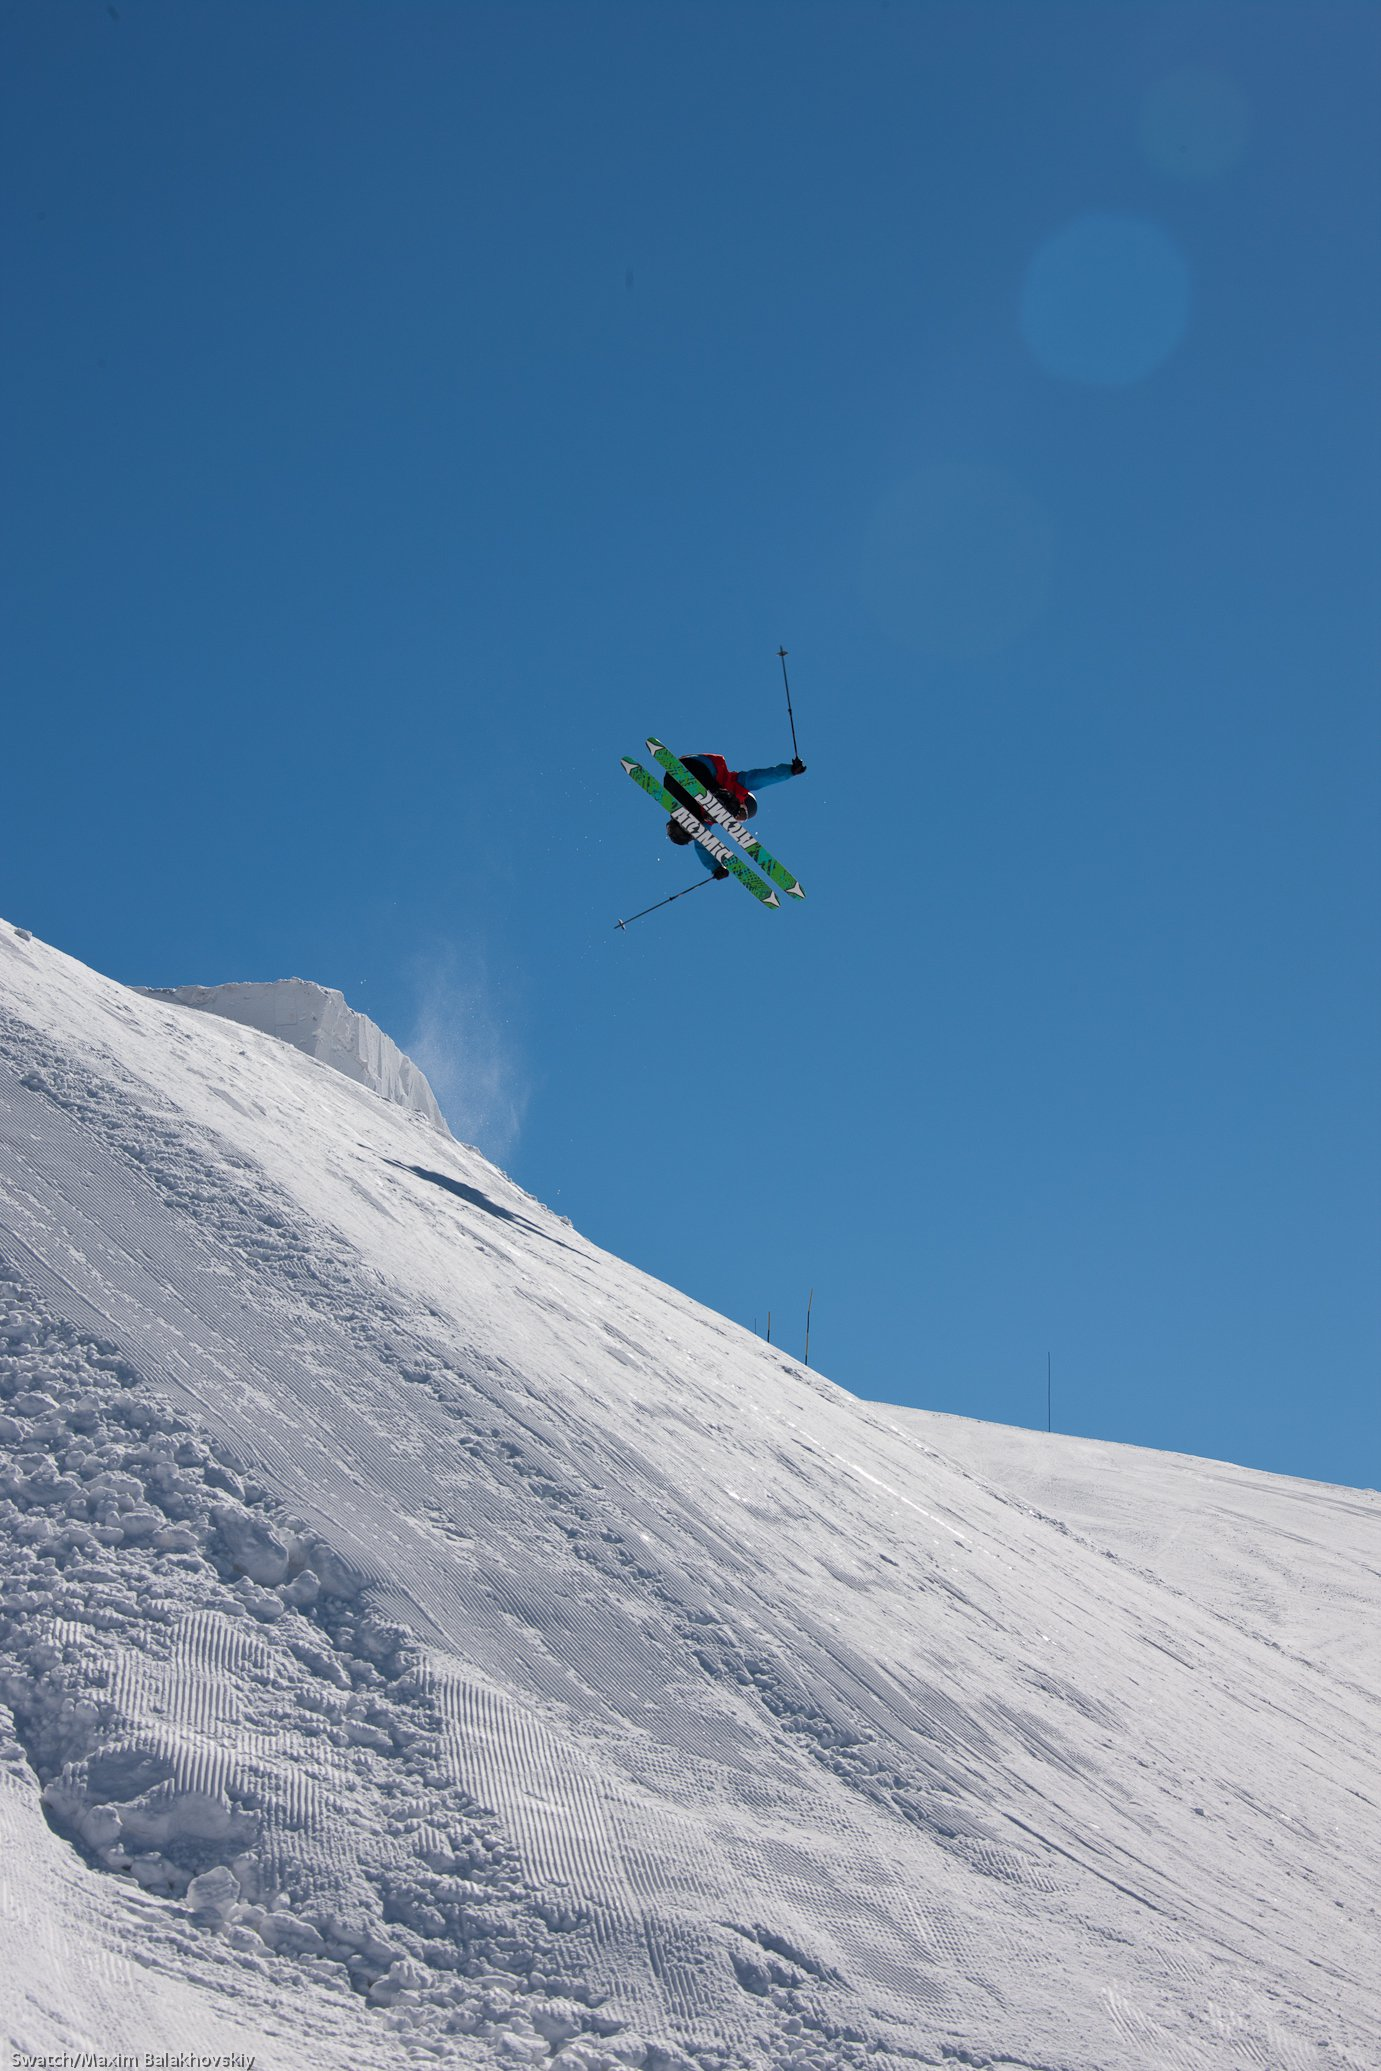 Dana Flahr at the Swatch Skiers Cup